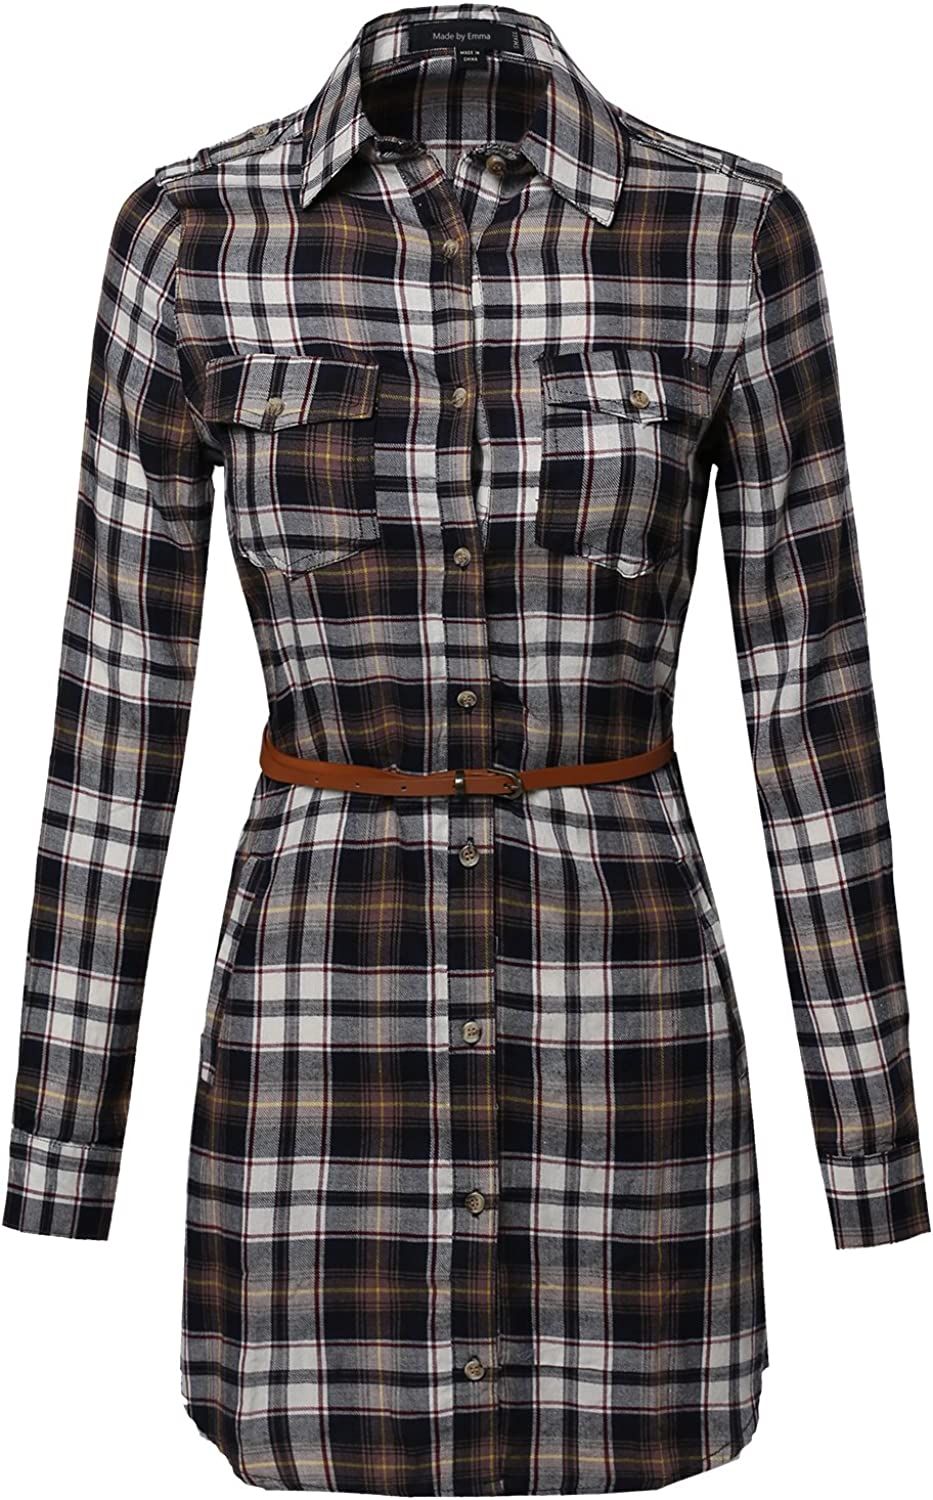 Made by Emma MBE Women's Super Cute Flannel Plaid Checker Shirts Dress with Belt